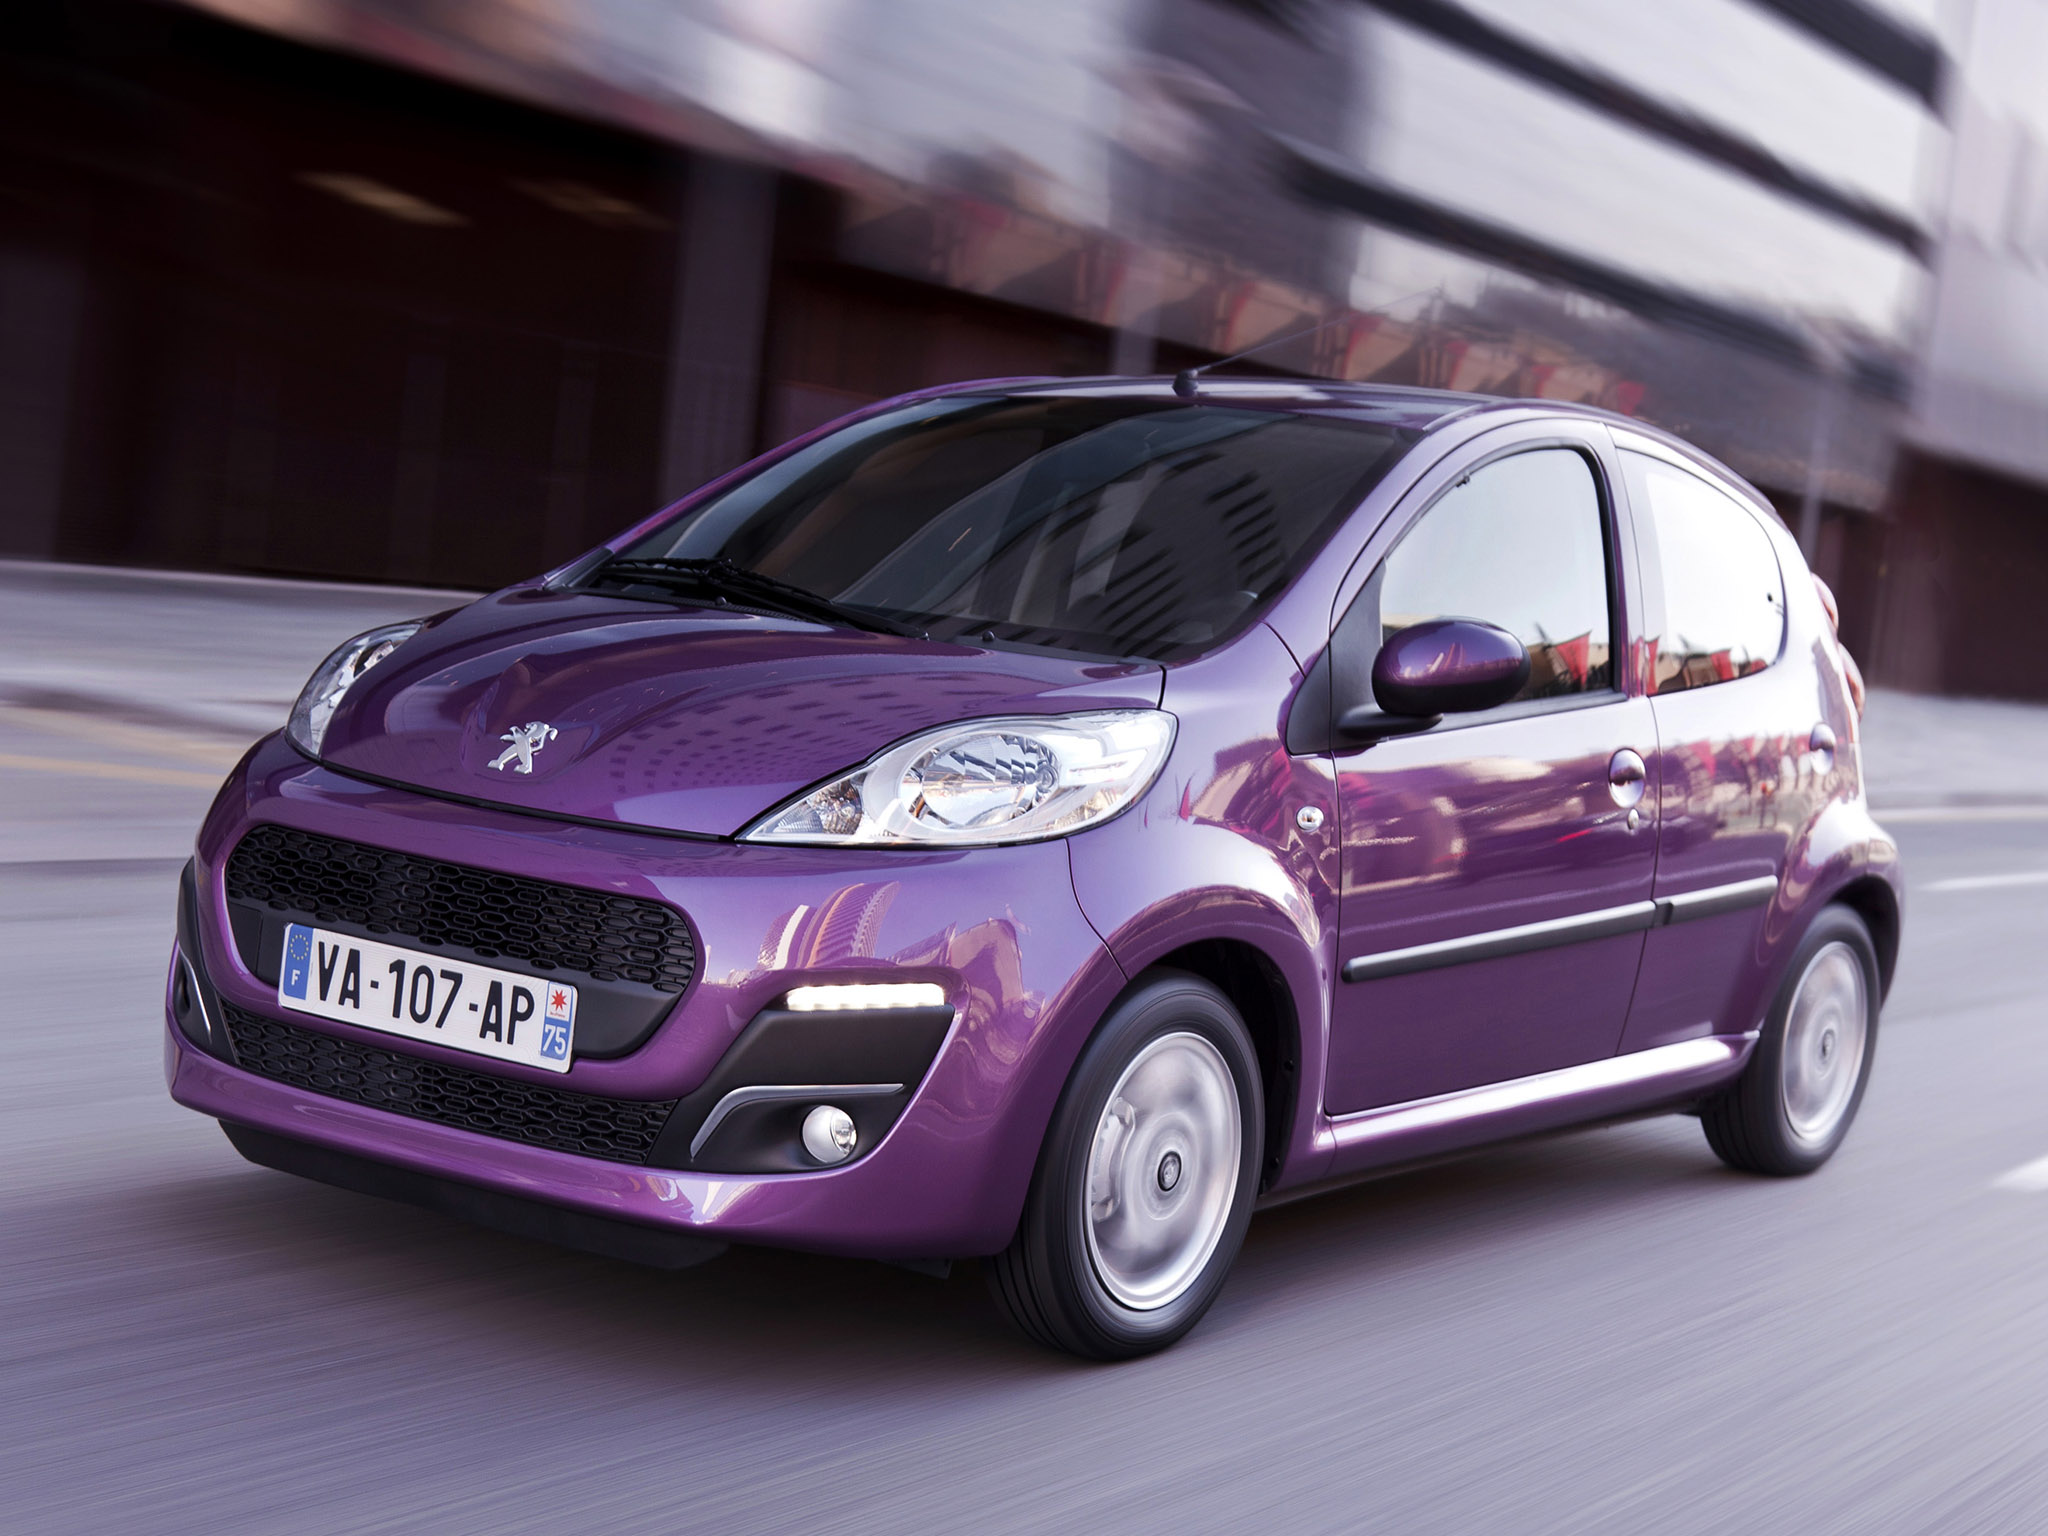 Le Meilleur Car In Pictures – Car Photo Gallery » Peugeot 107 5 Door Ce Mois Ci Original 1024 x 768